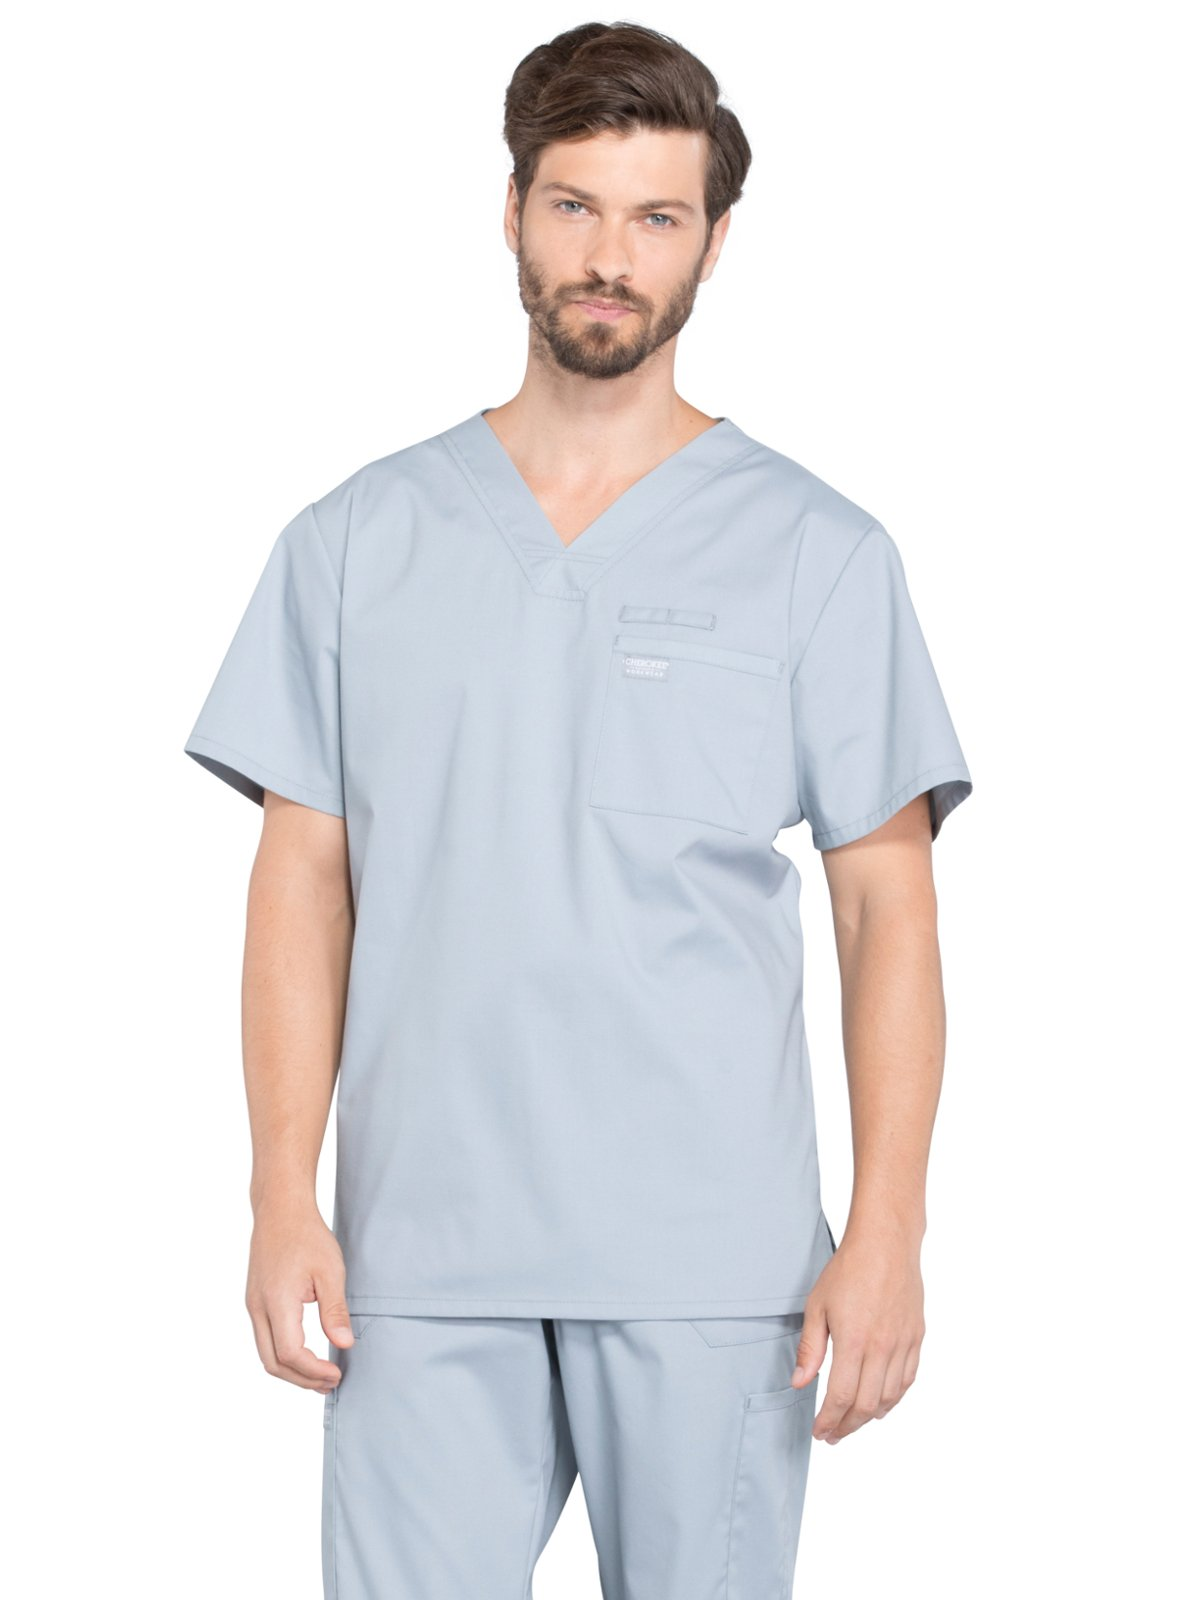 Cherokee Professionals Workwear Men's V-Neck Solid Scrub Top XXXXX-Large Grey